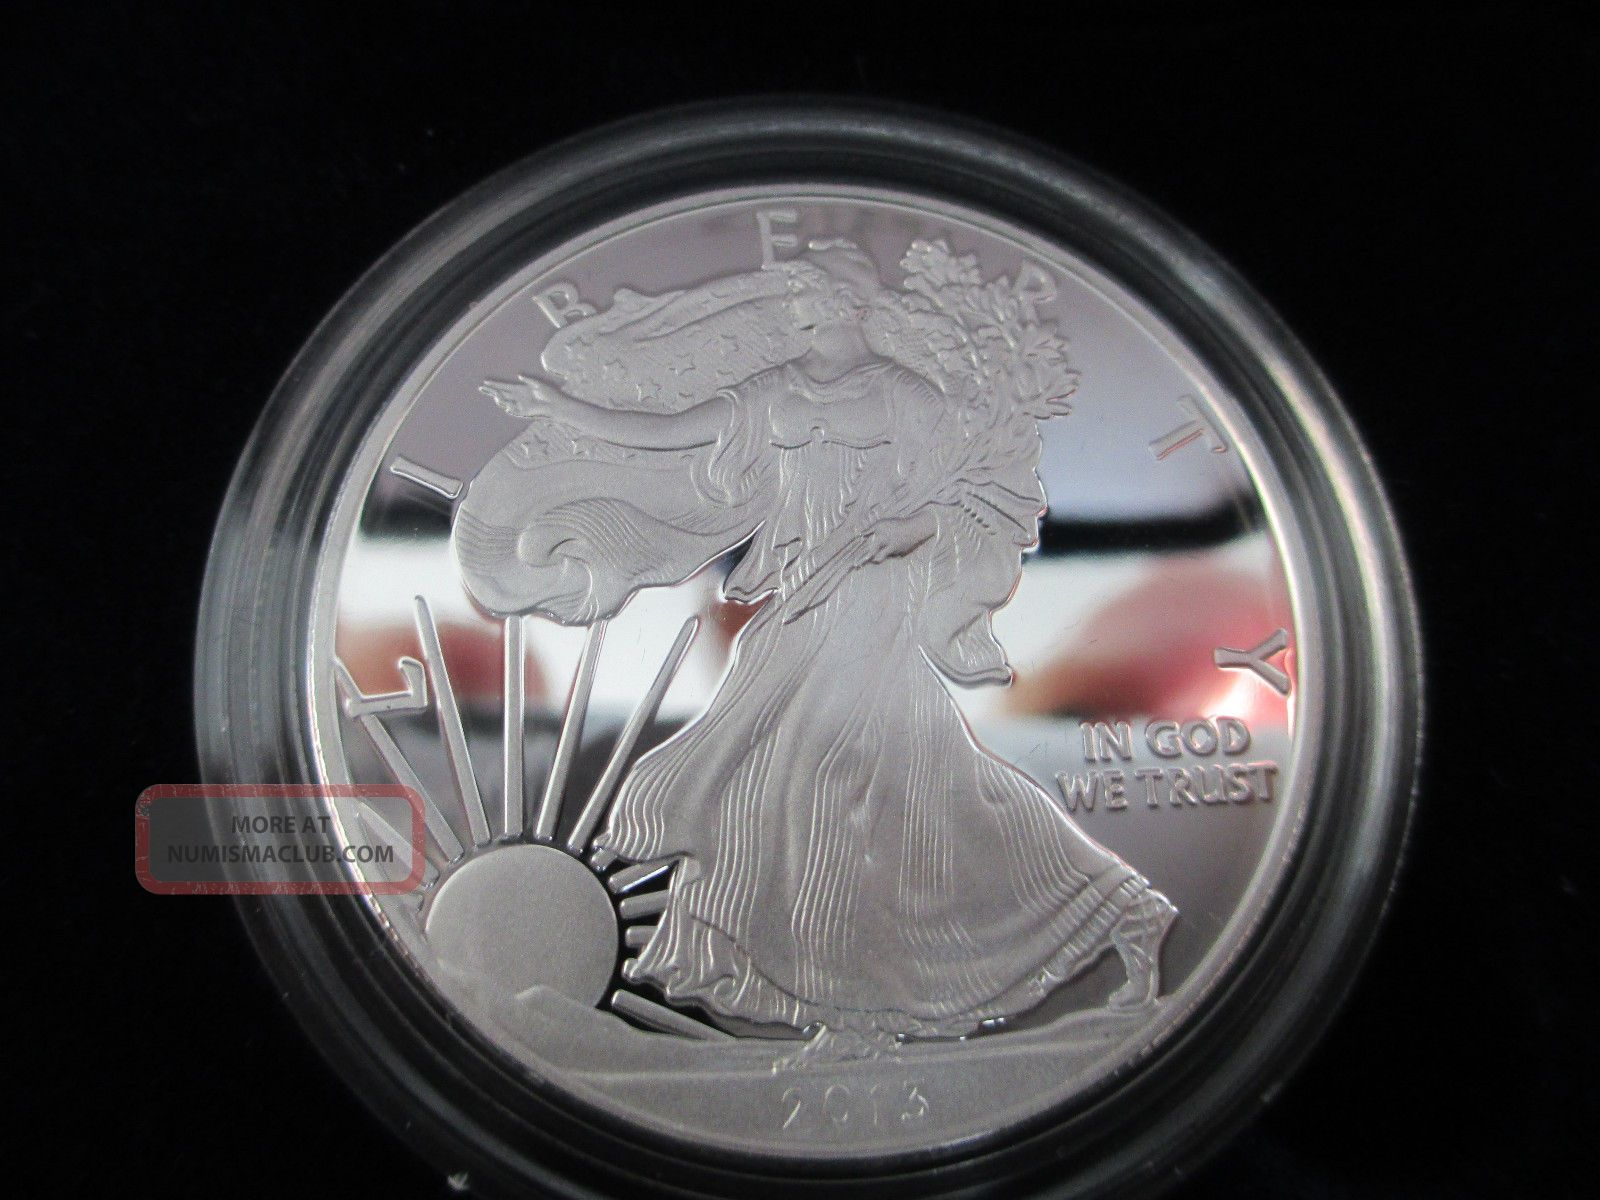 2013 Proof American Eagle One Ounce Silver West Point